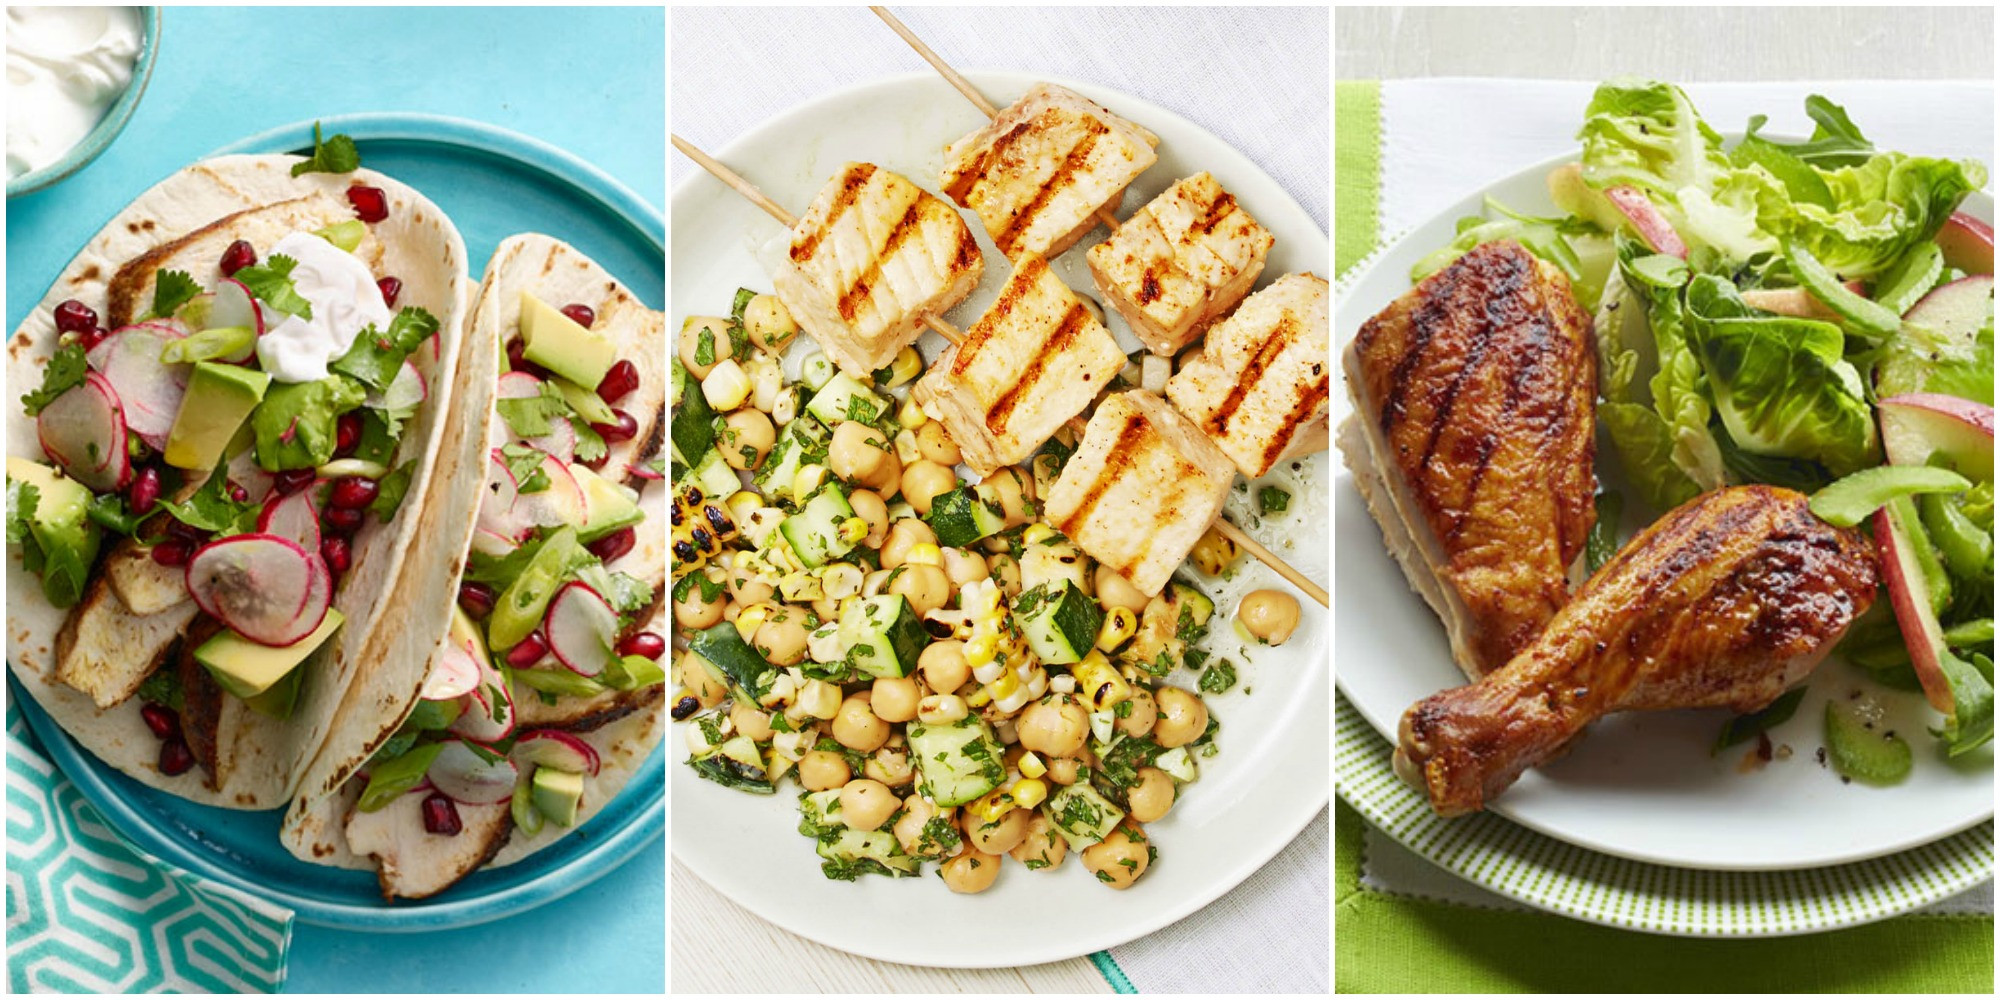 Simple Summer Dinners Recipes  60 Best Summer Dinner Recipes Quick and Easy Summer Meal